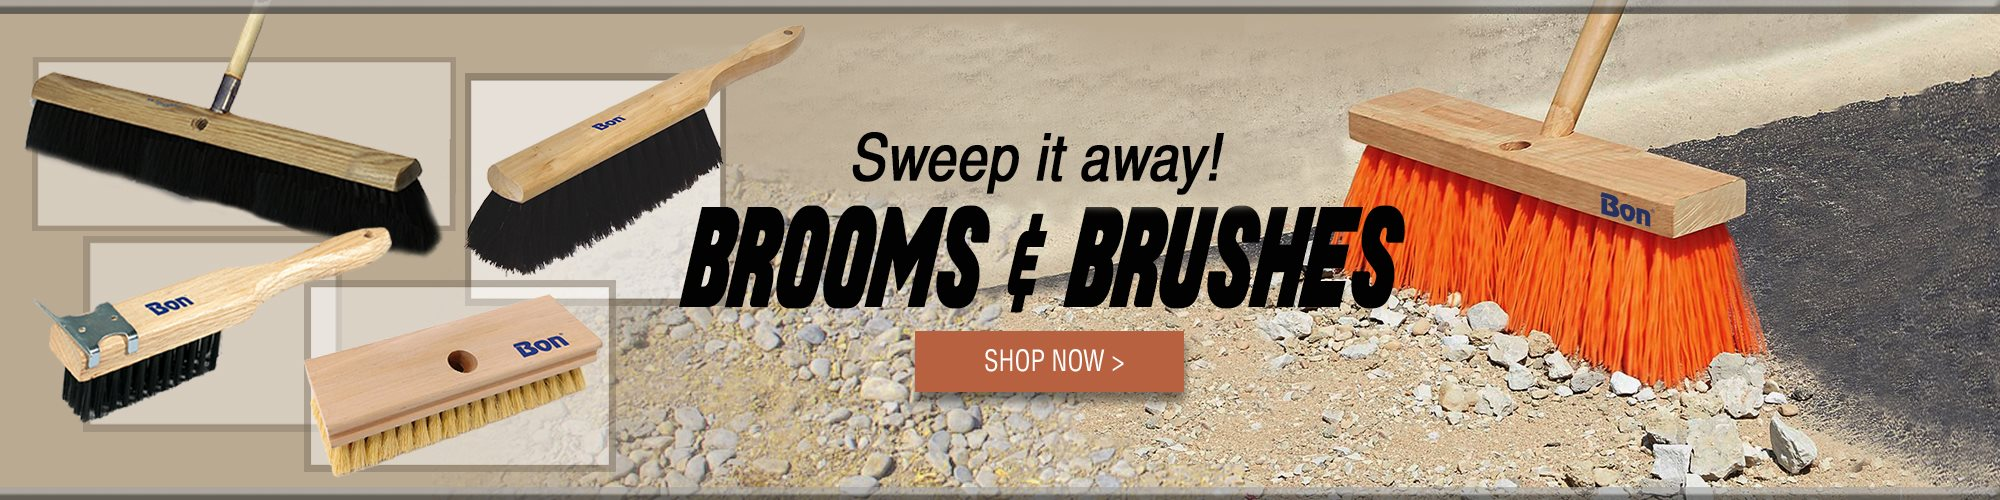 Bon Brooms and Brushes